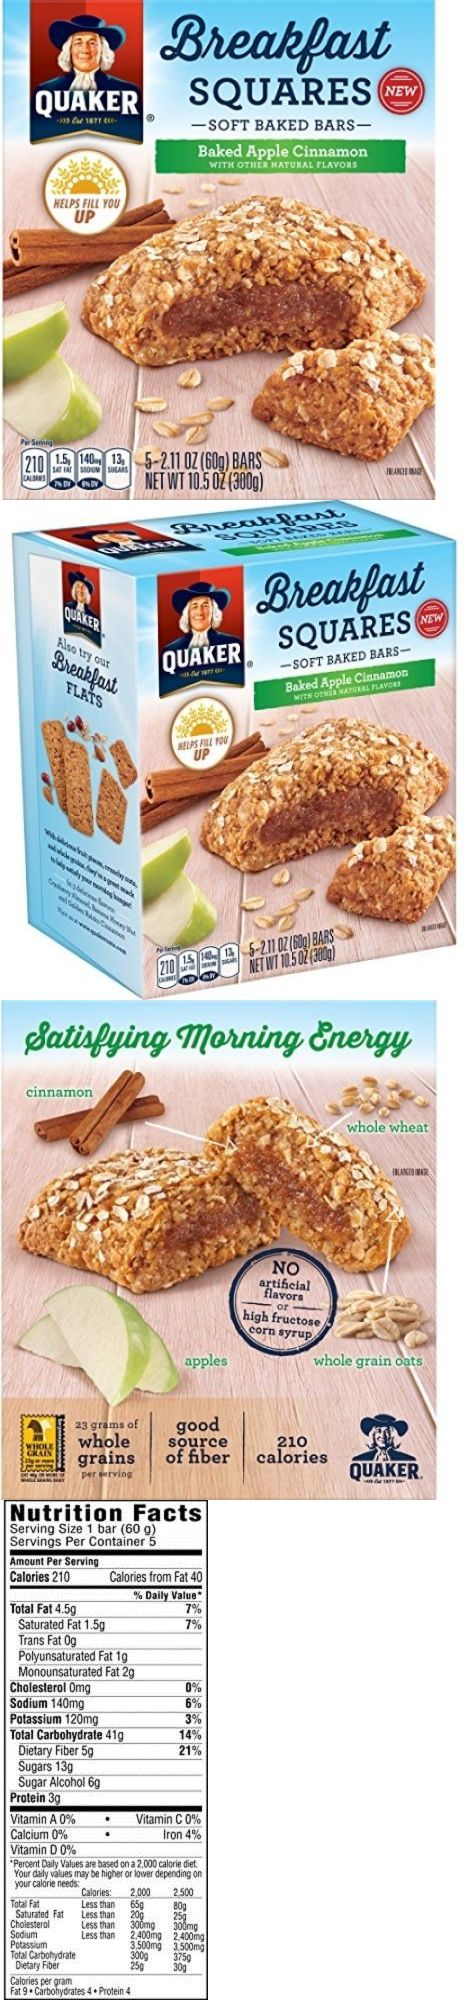 Cereals and Breakfast Foods 62717: Quaker Breakfast Squares, Soft Baked Bars, Apple Cinnamon, 5 Bars (Pack Of 8) -> BUY IT NOW ONLY: $30.52 on eBay!